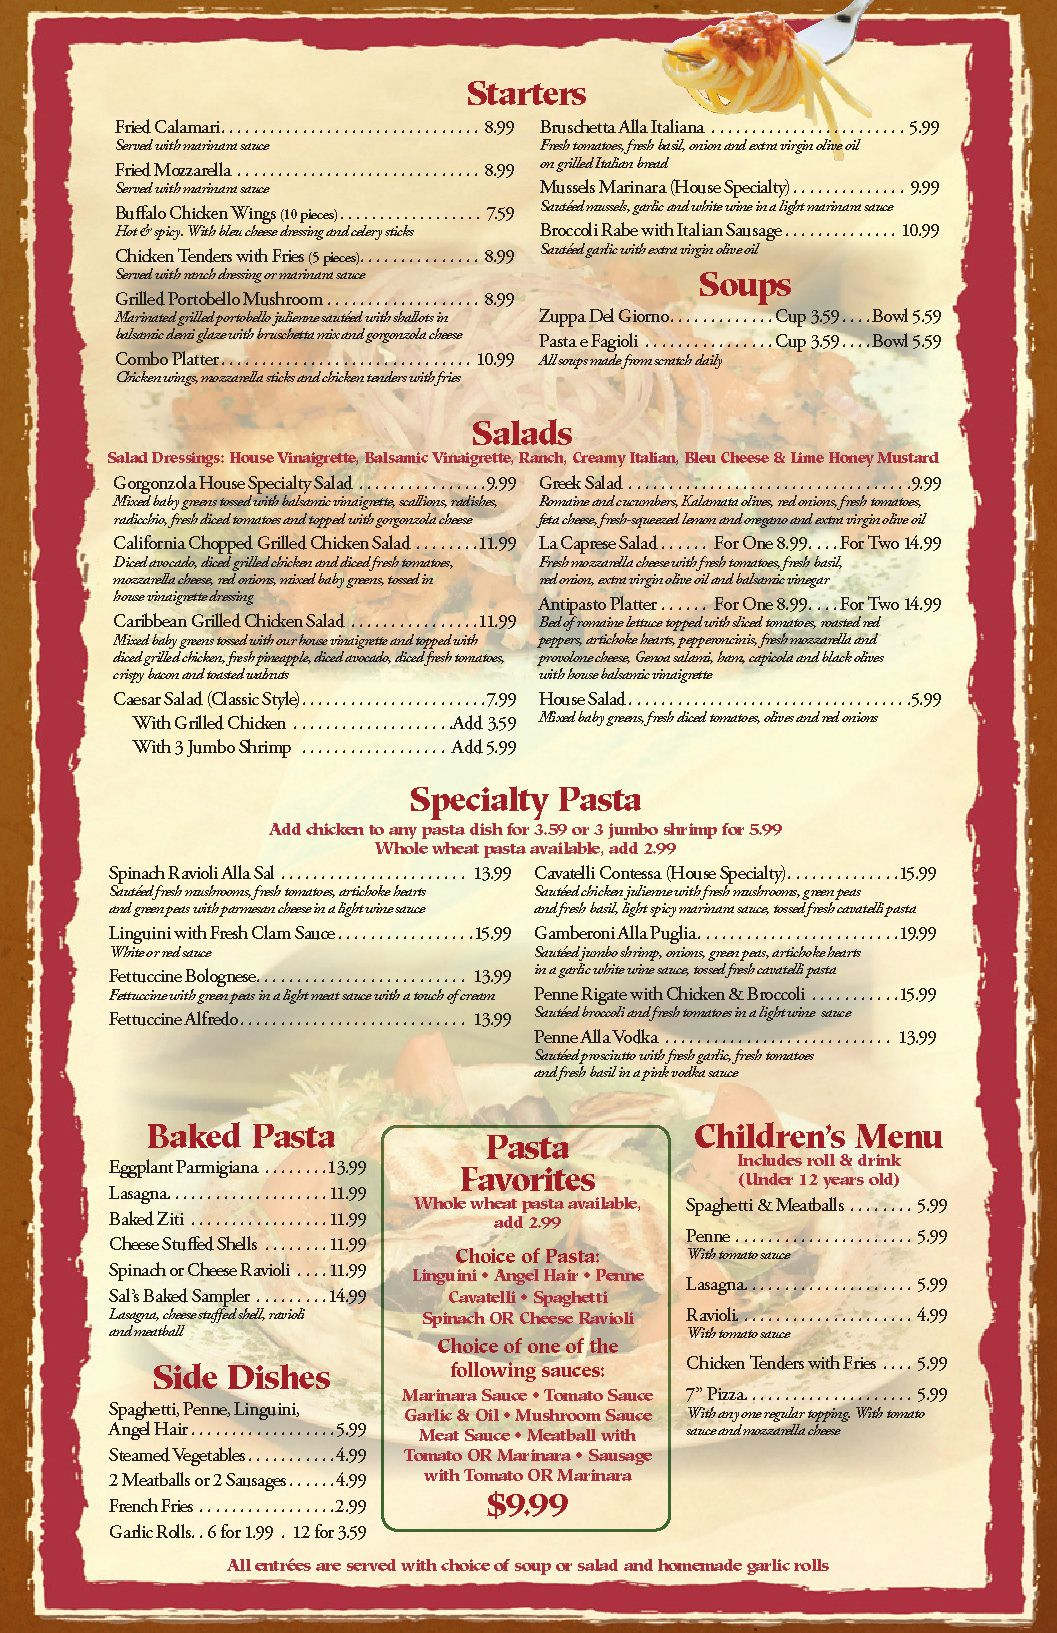 Restaurant Menu Free Template microsoft word notepad template leaf – How to Make a Restaurant Menu on Microsoft Word